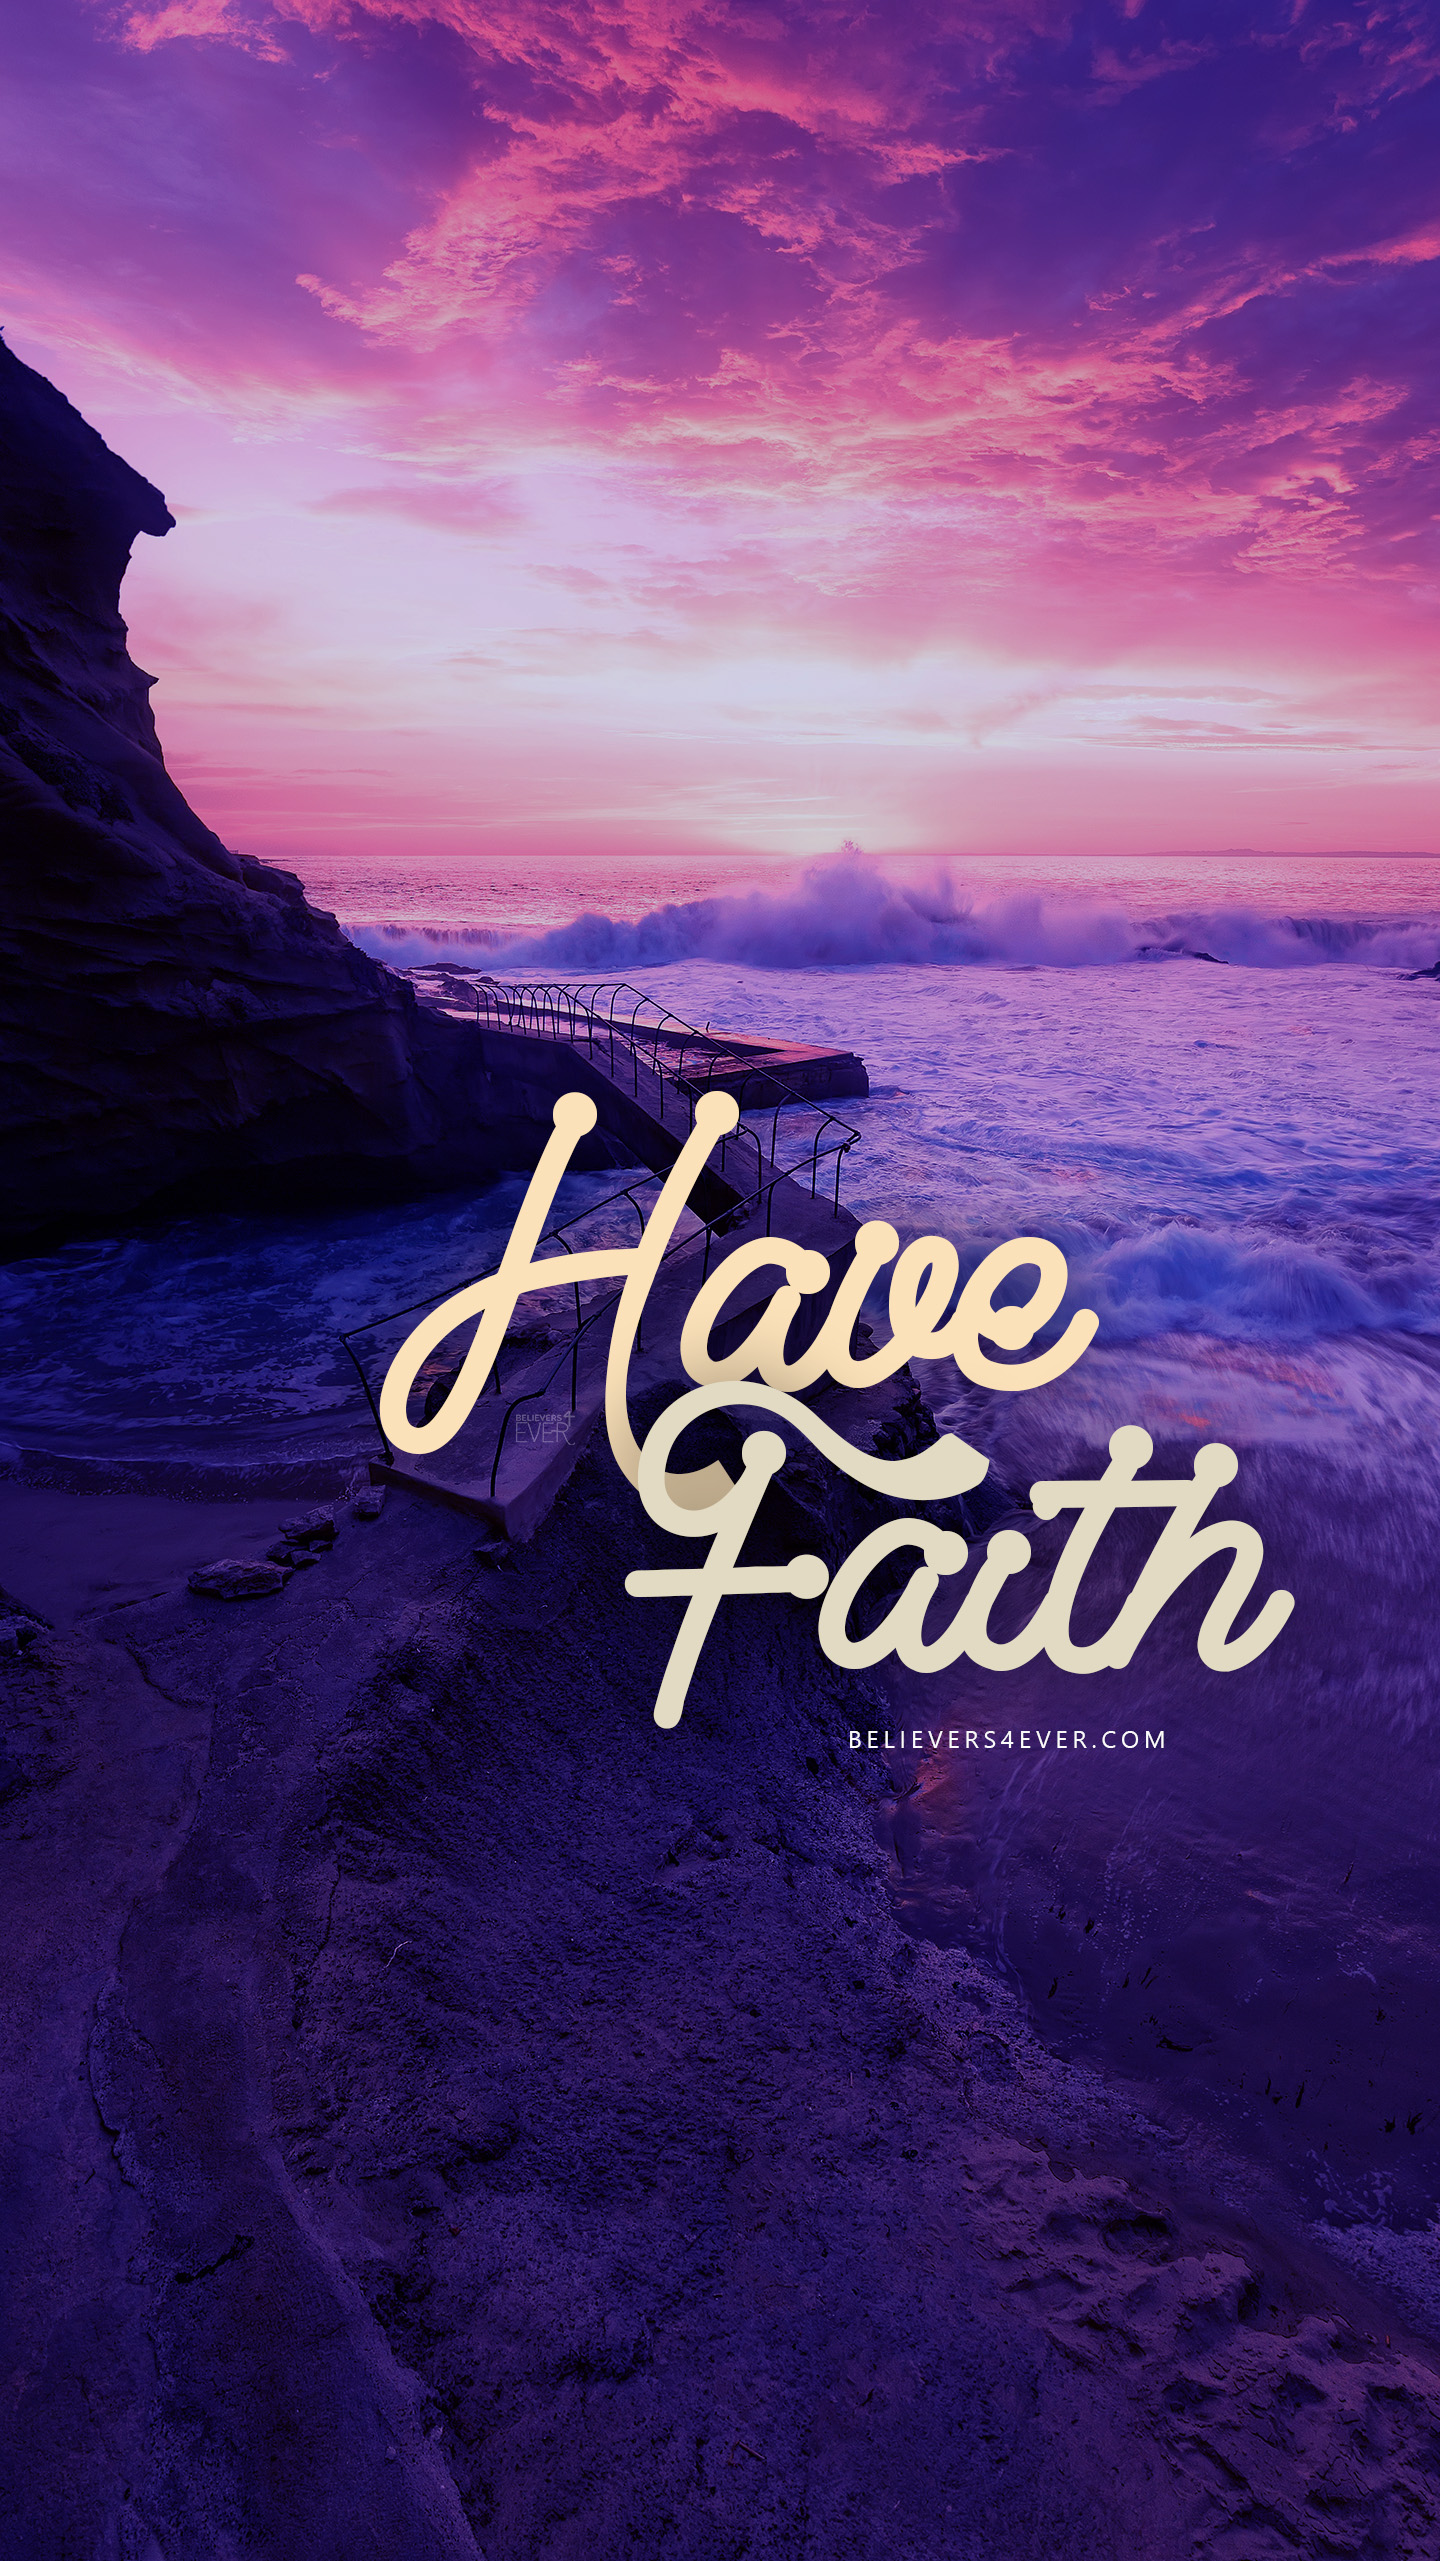 Have Faith free wallpaper background for mobile phone